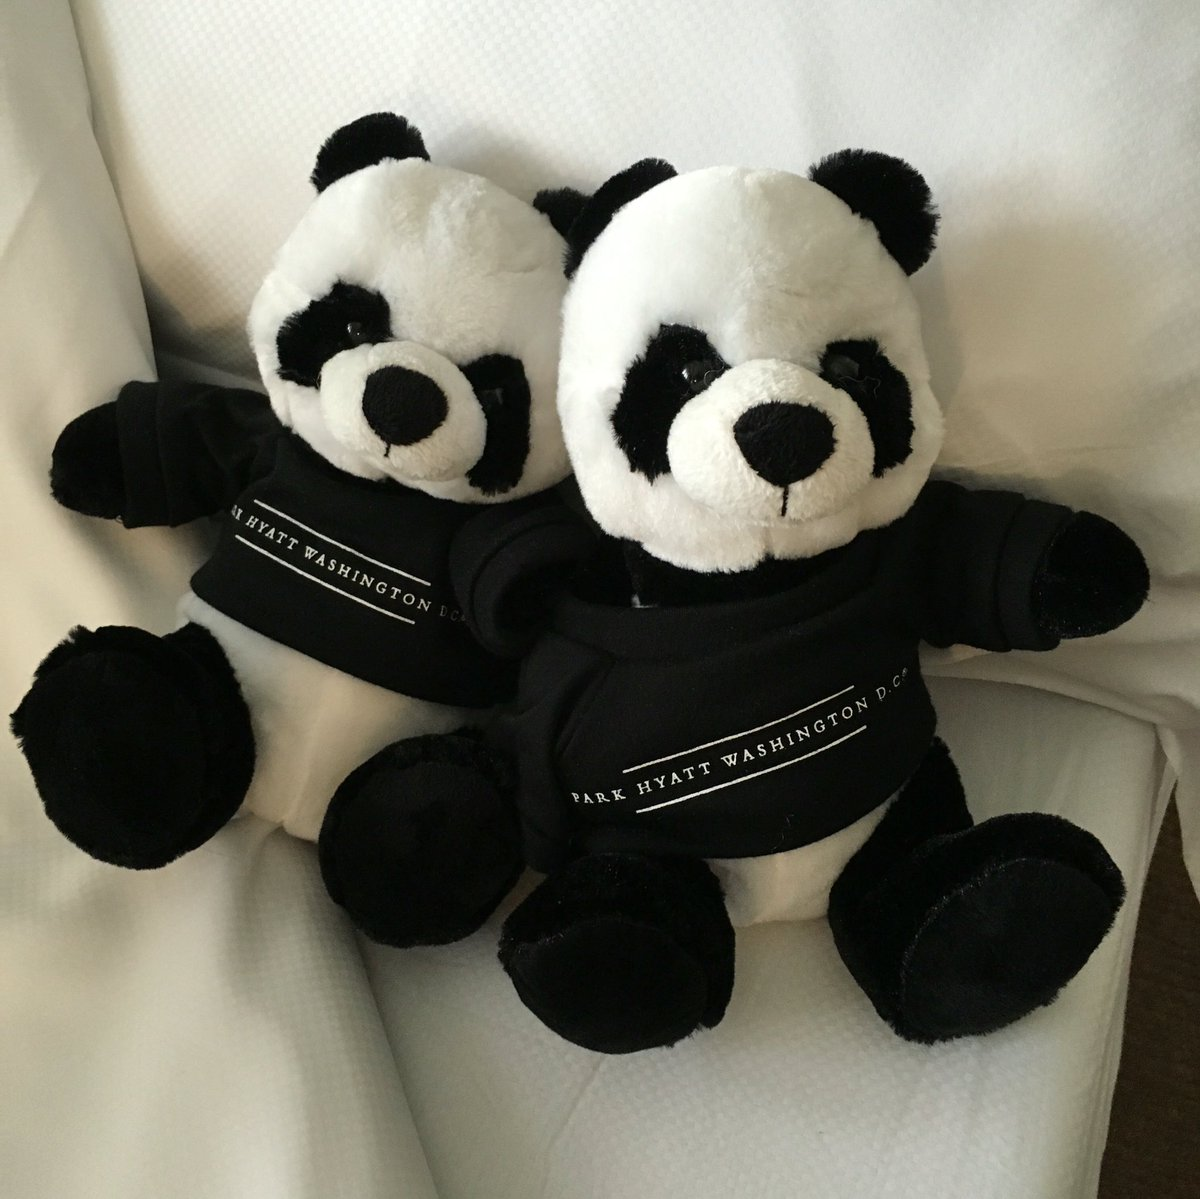 Pandas for the kids - nice touch. Thanks @ParkHyattDC! https://t.co/uW0zD8ngPW